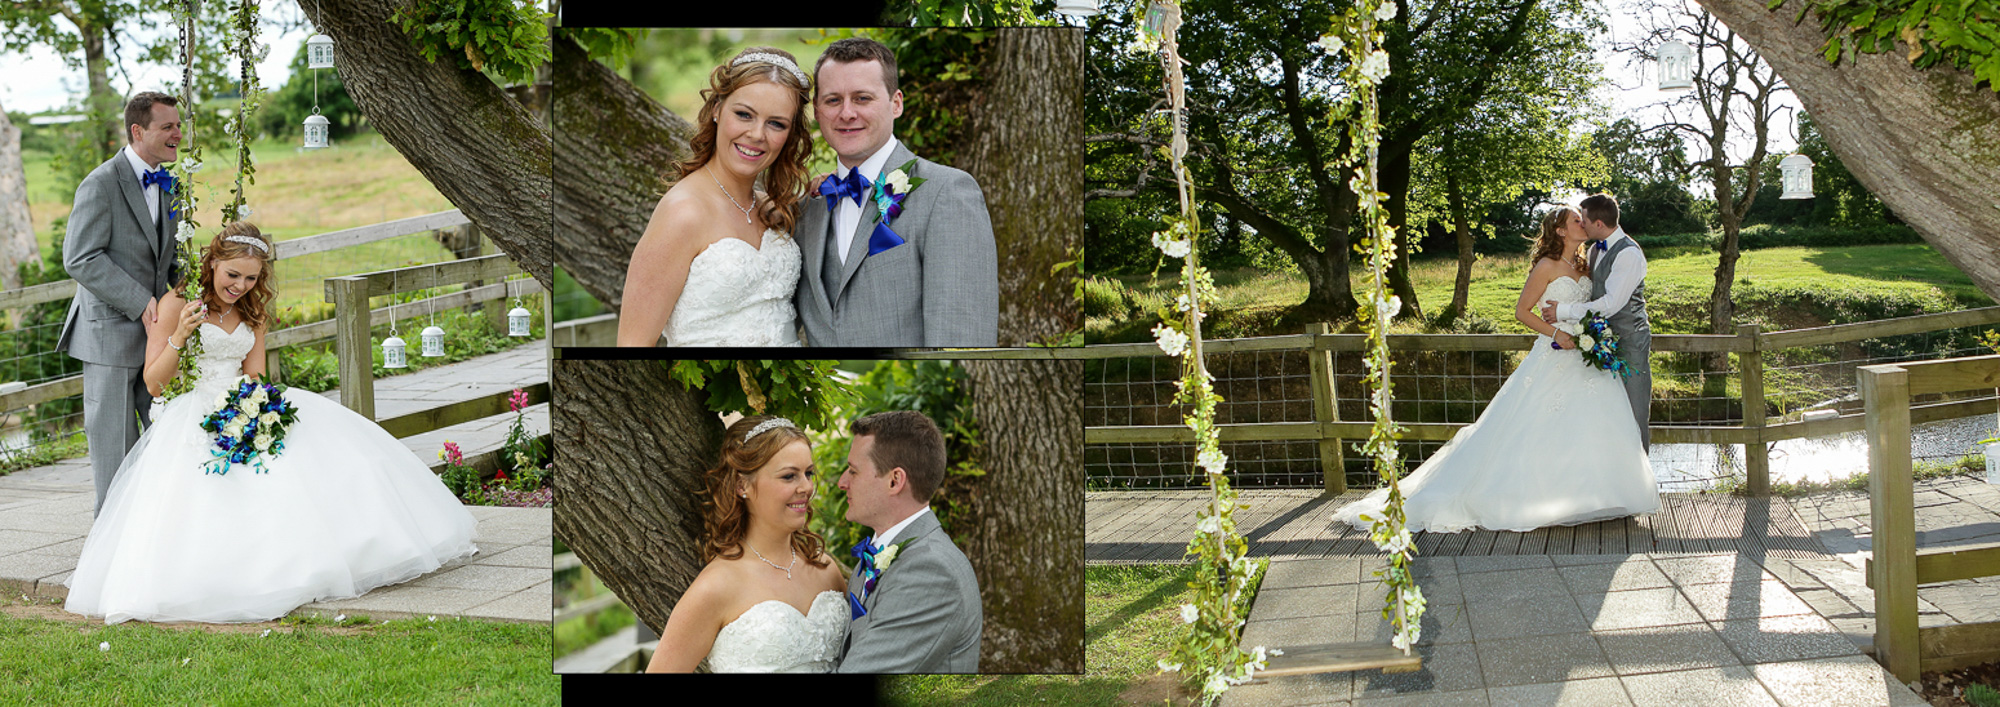 weddingjasminandrobert022.jpg